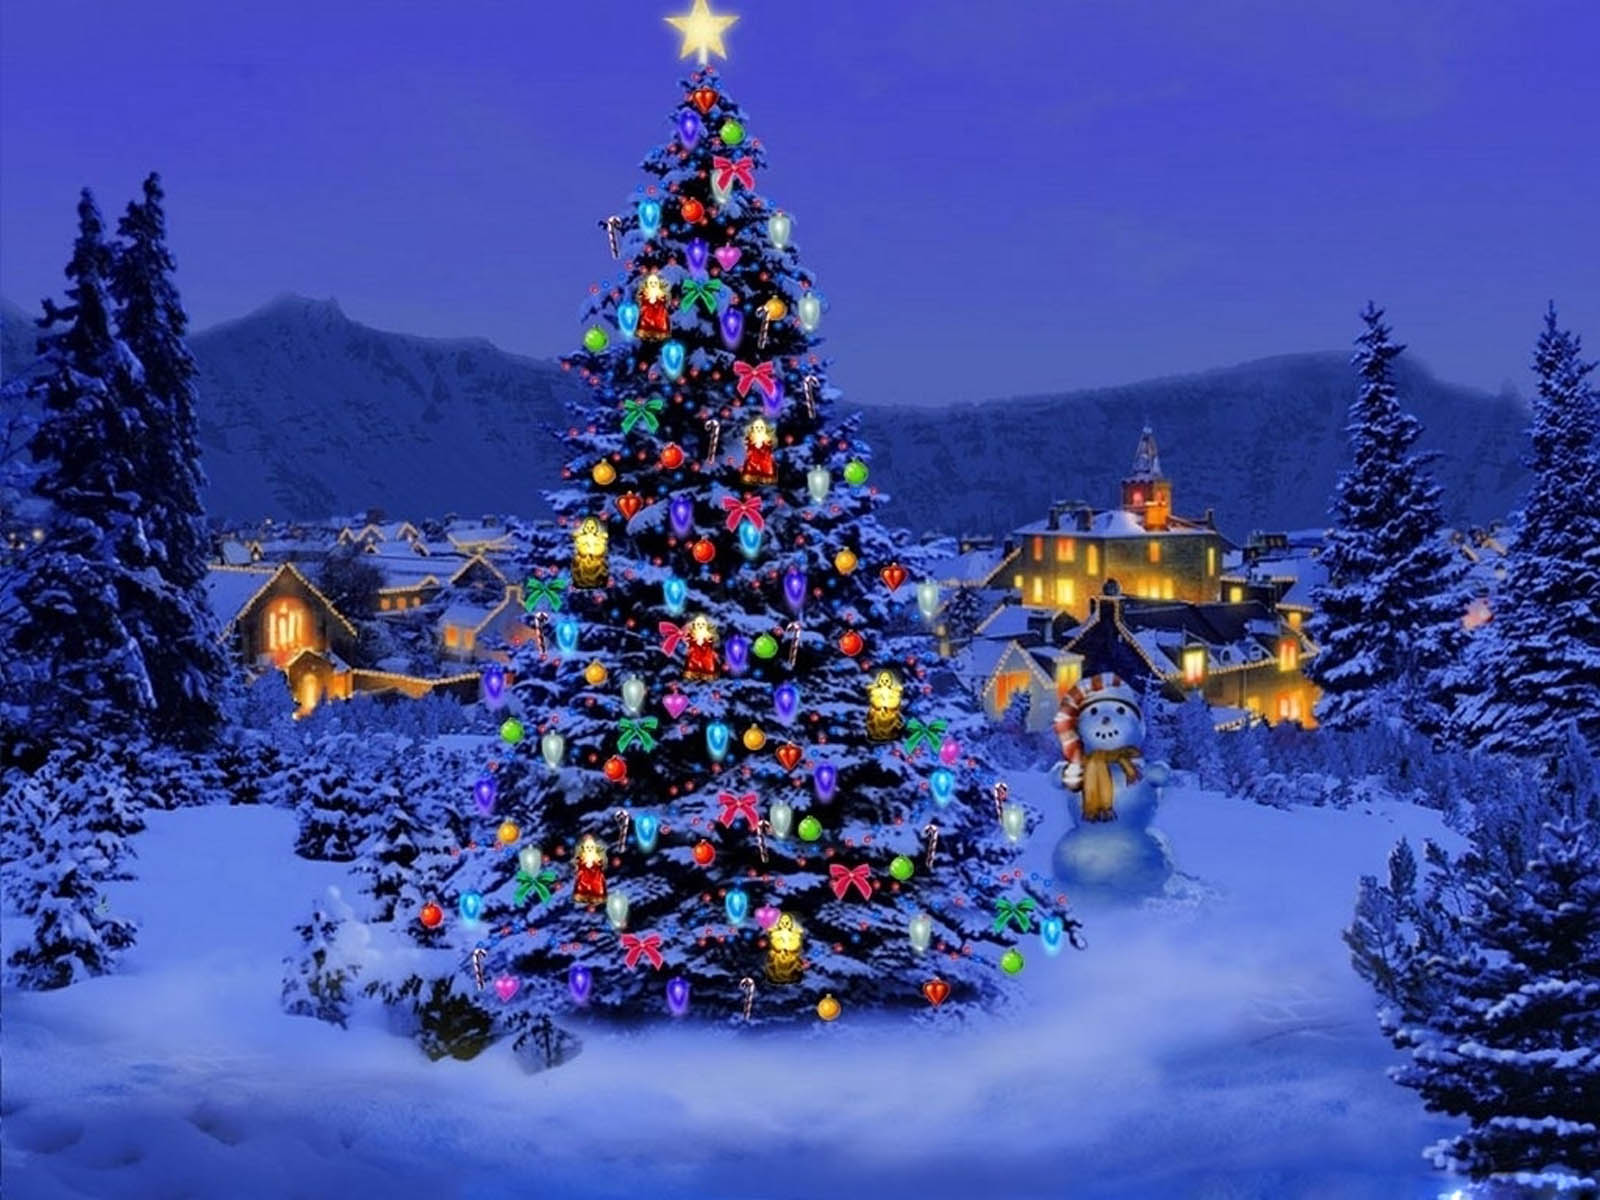 Wallpapers: Christmas Tree Decoration